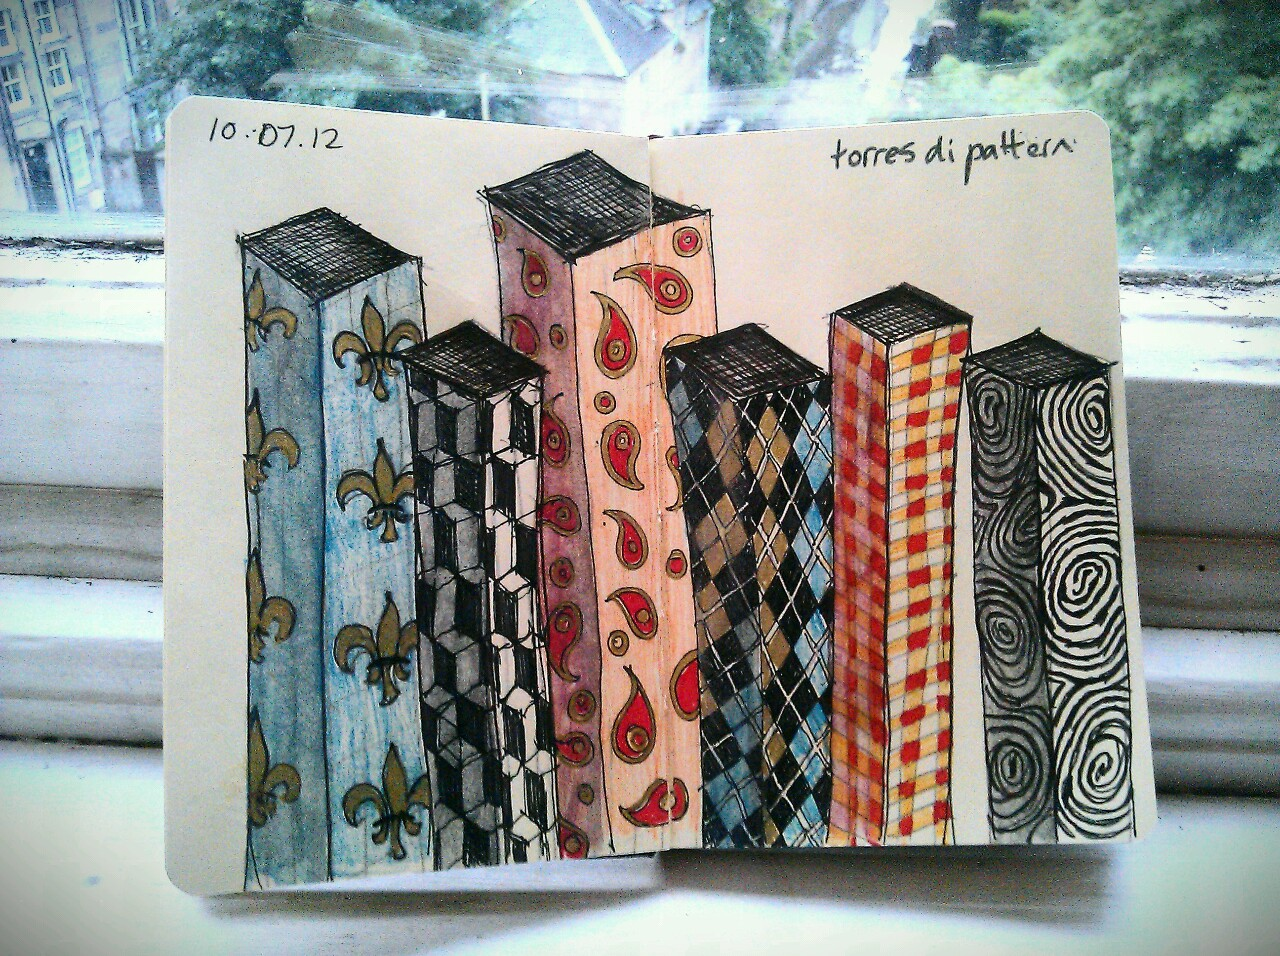 365 drawings later … day 161 … torres di pattern